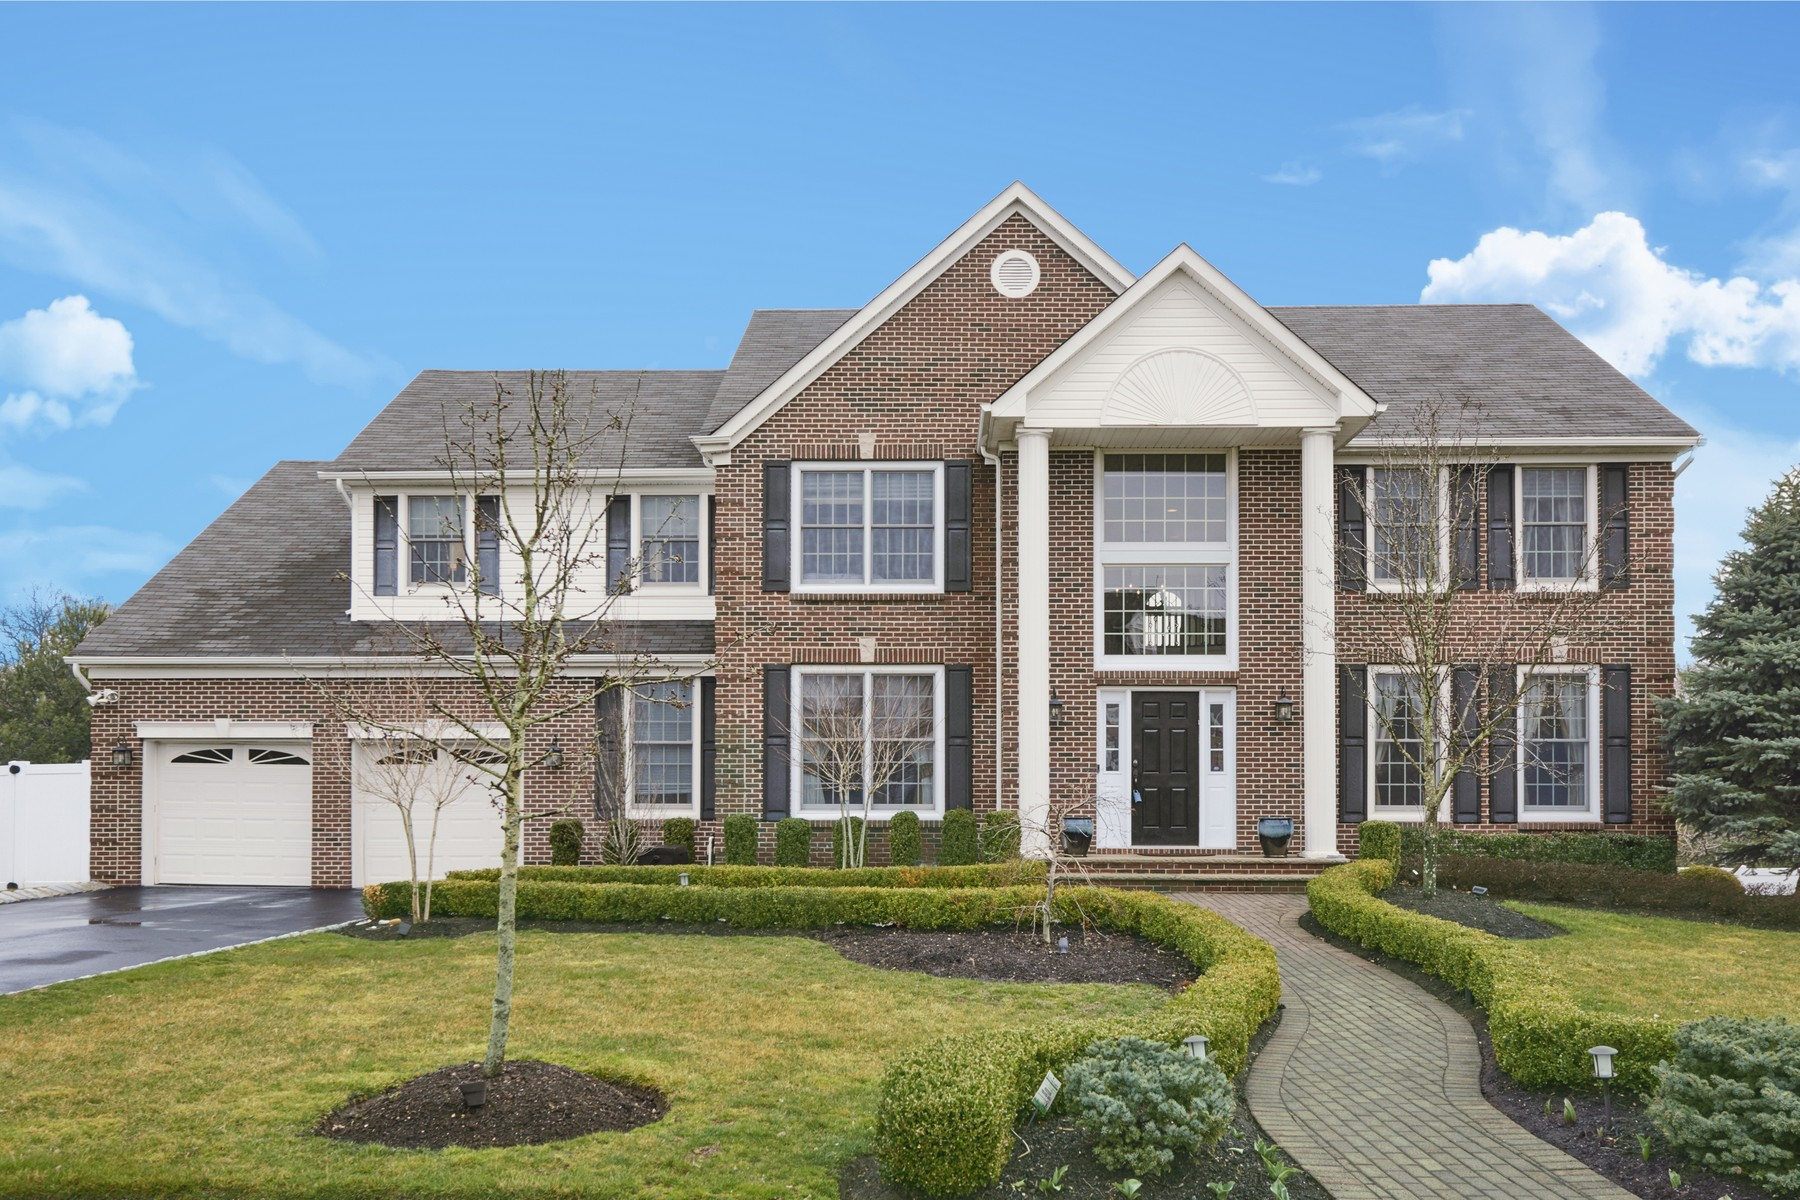 Single Family Home for Sale at Upscale Design 8 The Fellsway Ocean, New Jersey, 07712 United States